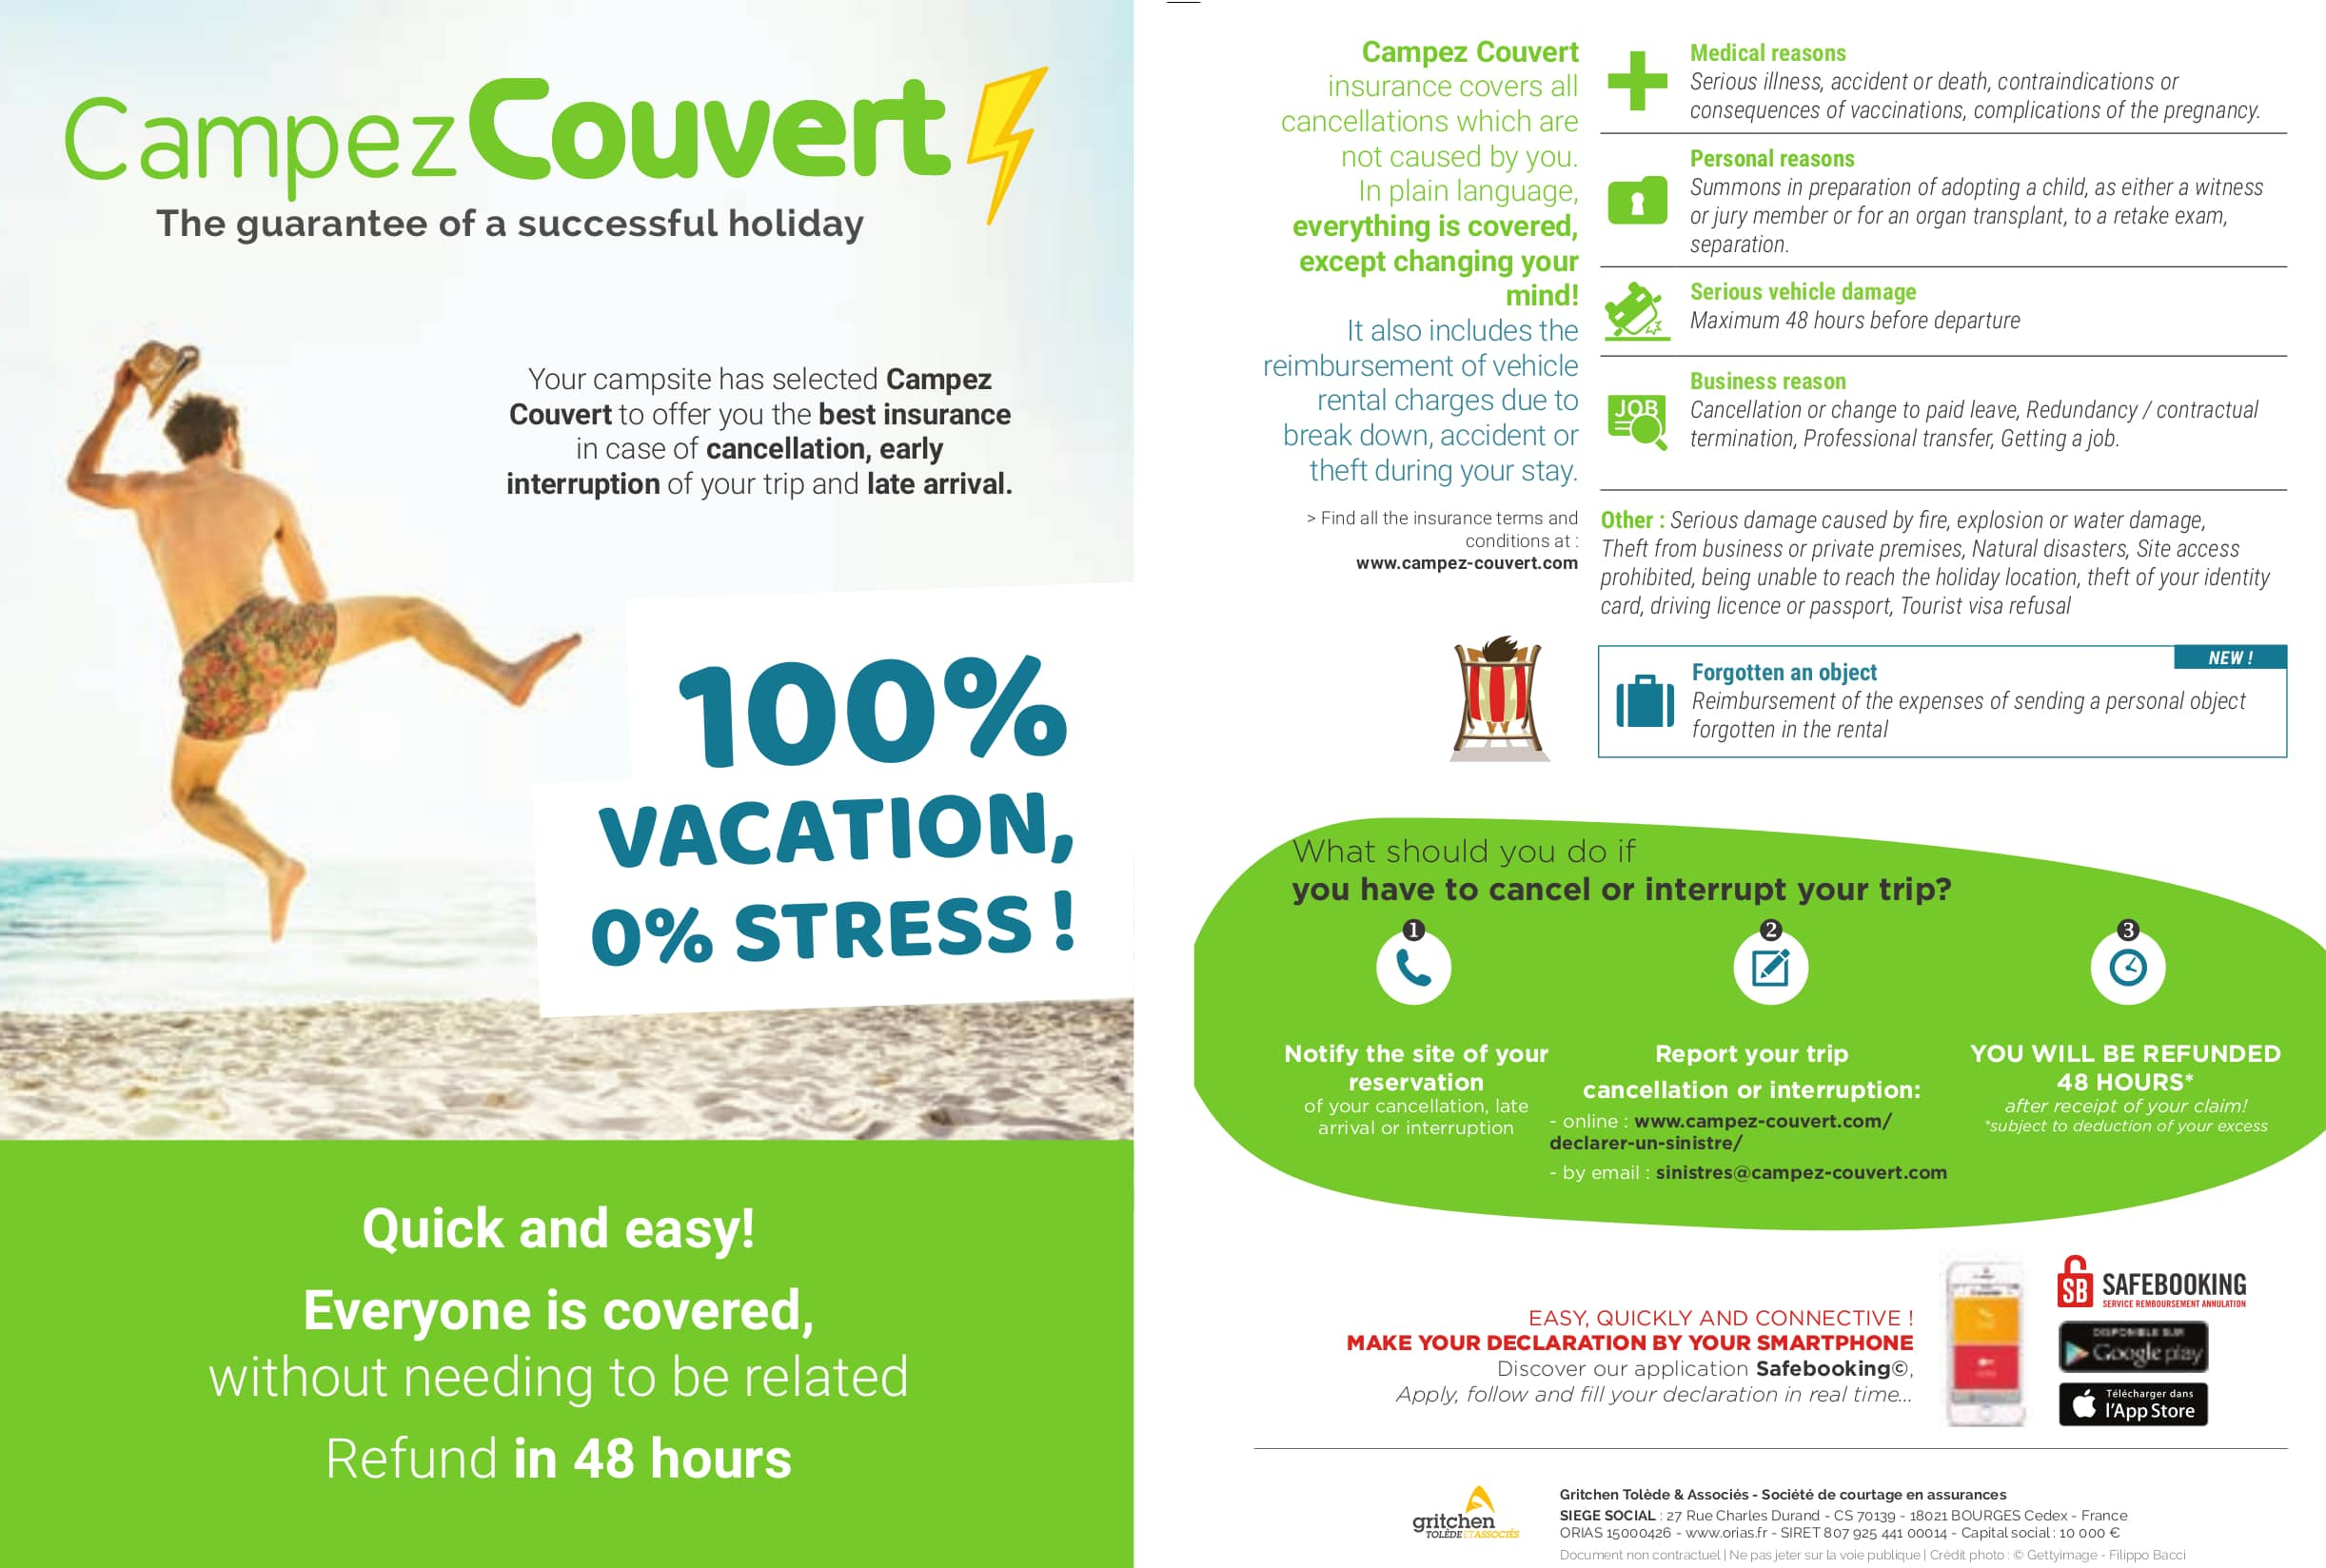 Campez Couvert cancellation insurance General Conditions